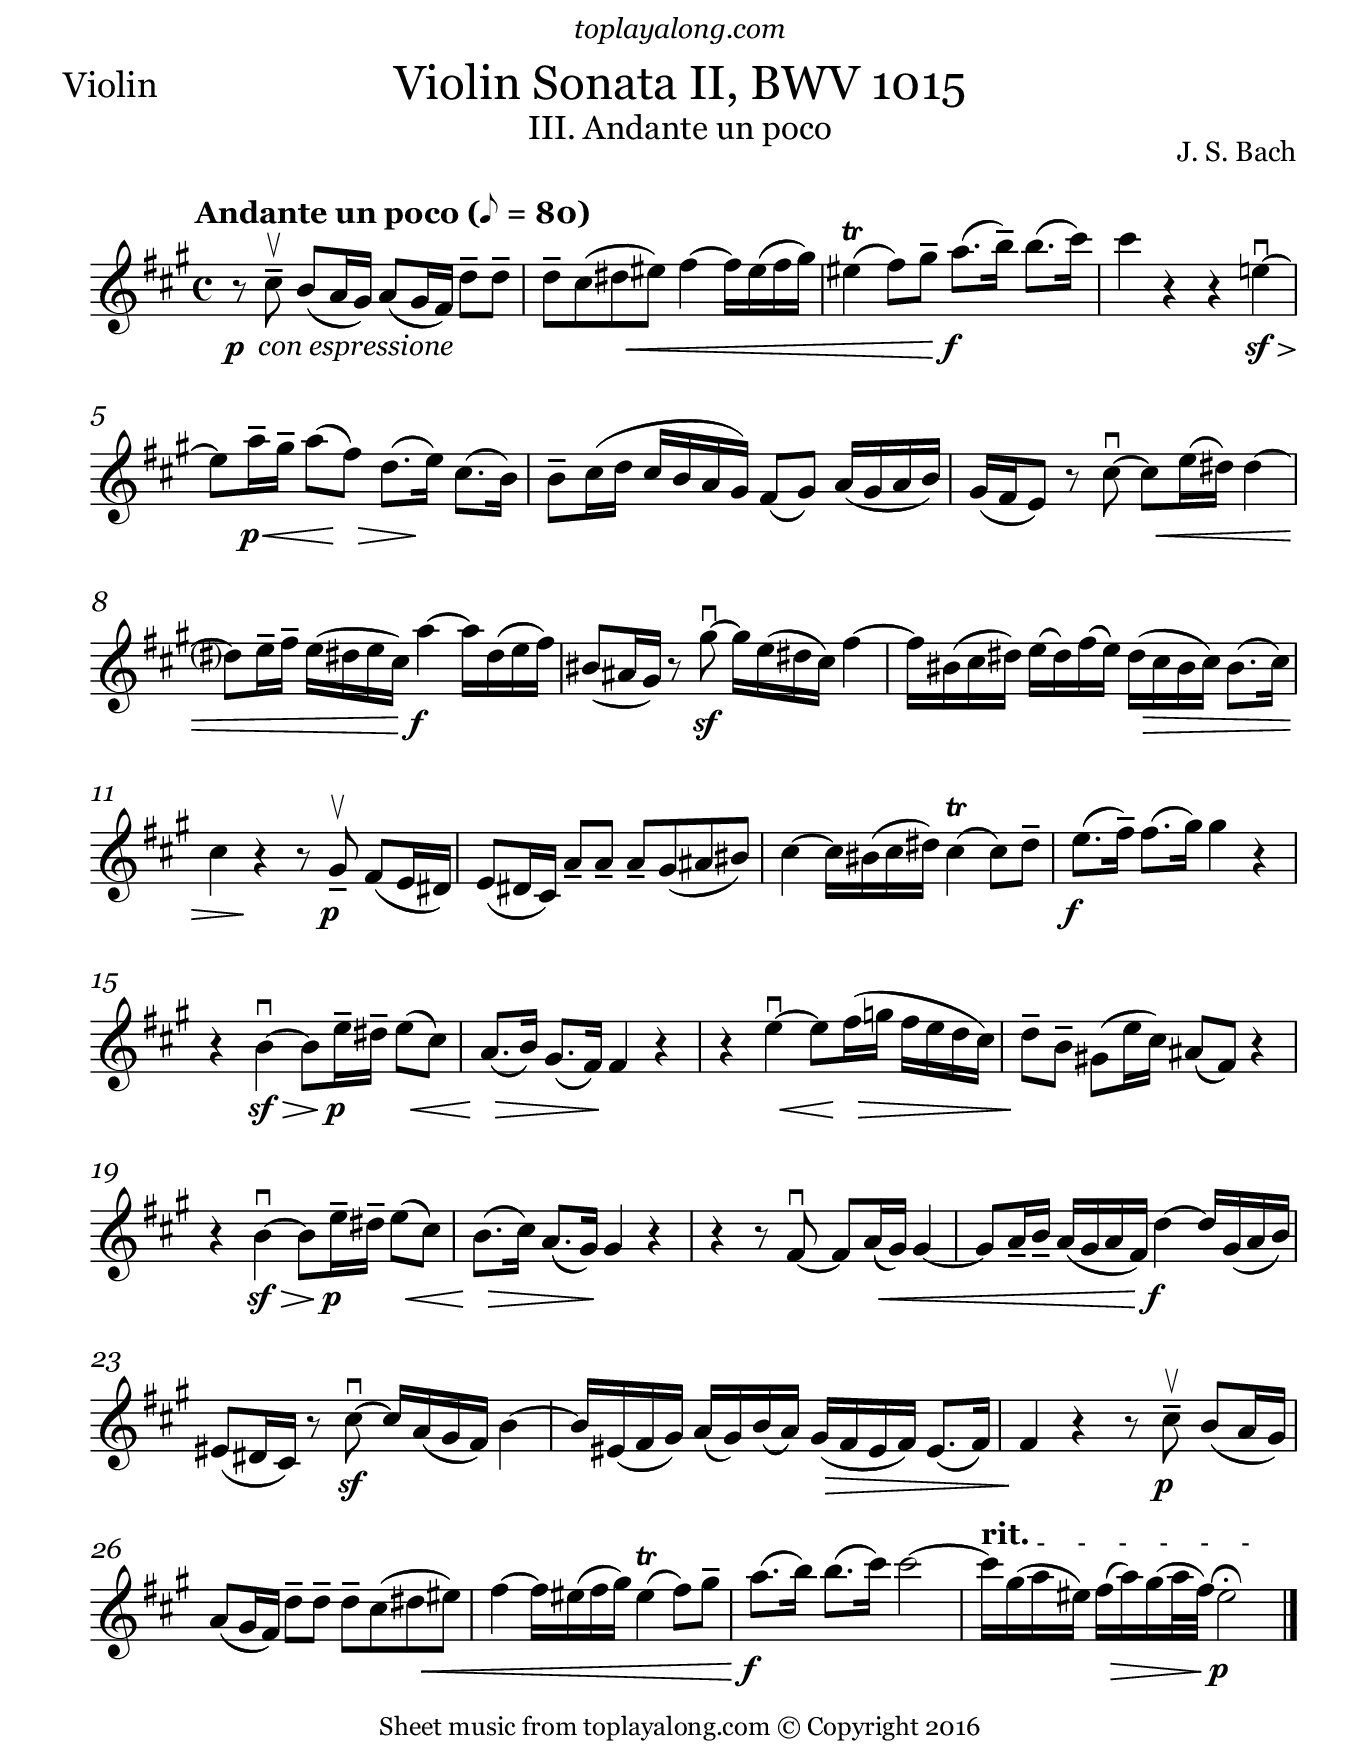 Violin Sonata No. 2 in A major mvt. 3 by J. S. Bach. Sheet music for Violin, page 1.